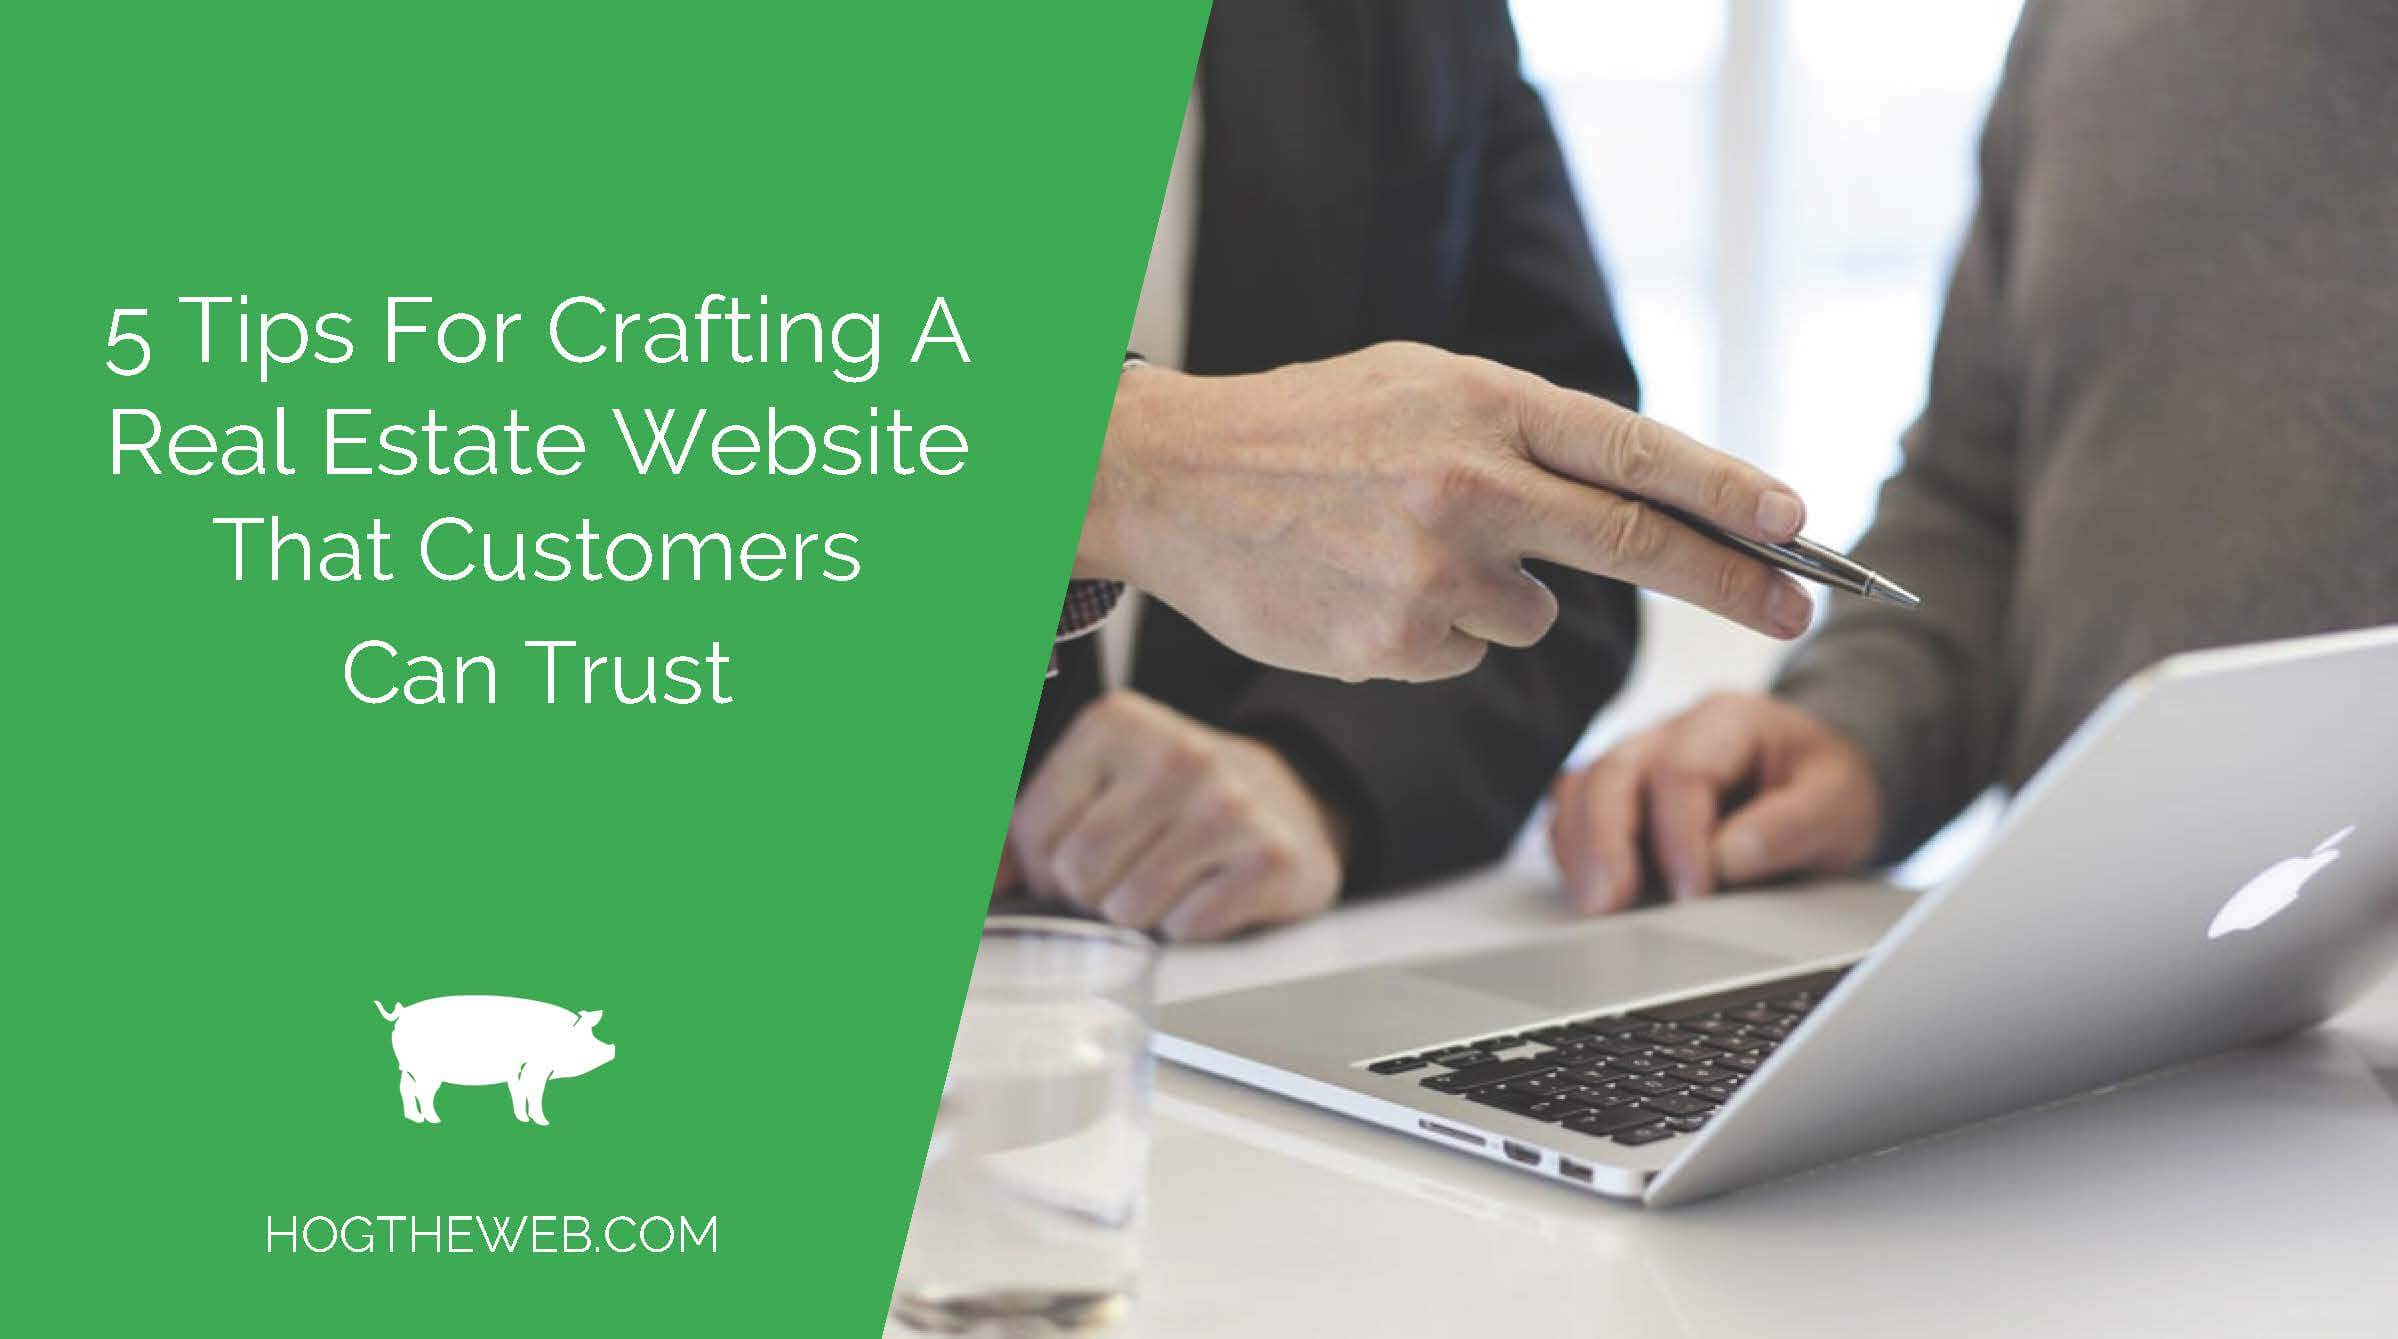 5 Tips For Crafting A Real Estate Website That Customers Can Trust In 2020